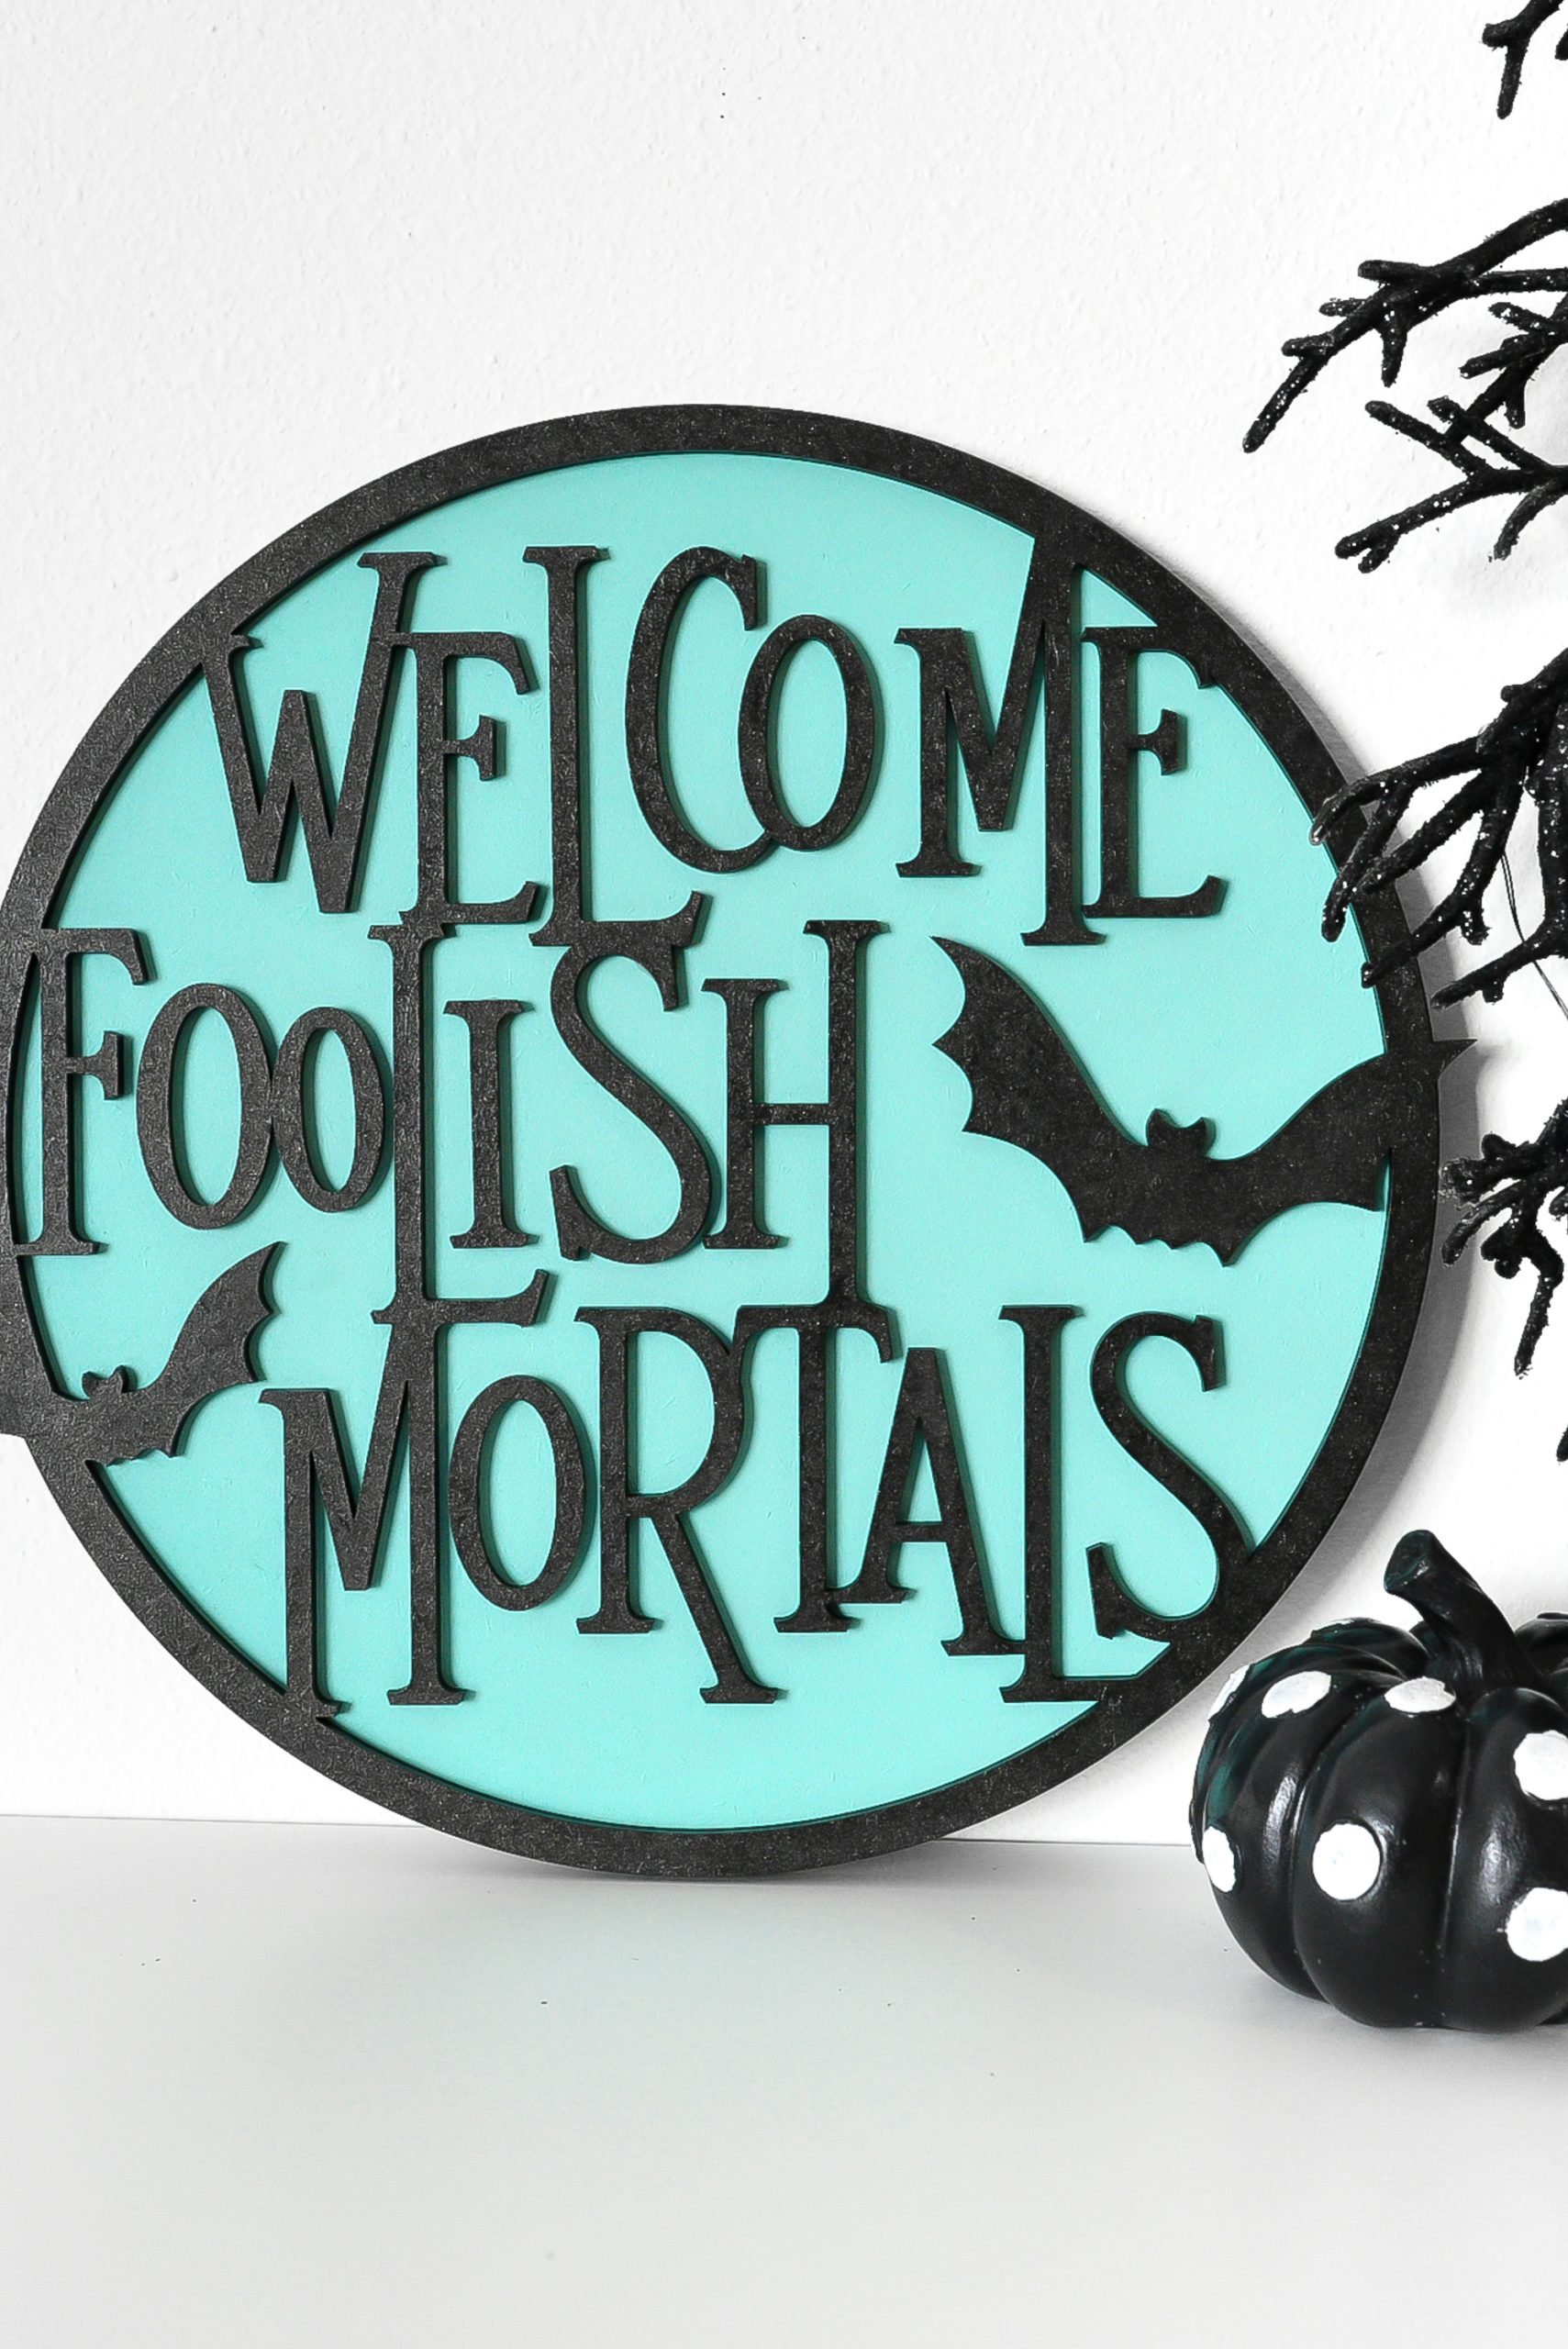 """Welcome Foolish Mortals"" sign made on the Glowforge on a shelf with Halloween decor"